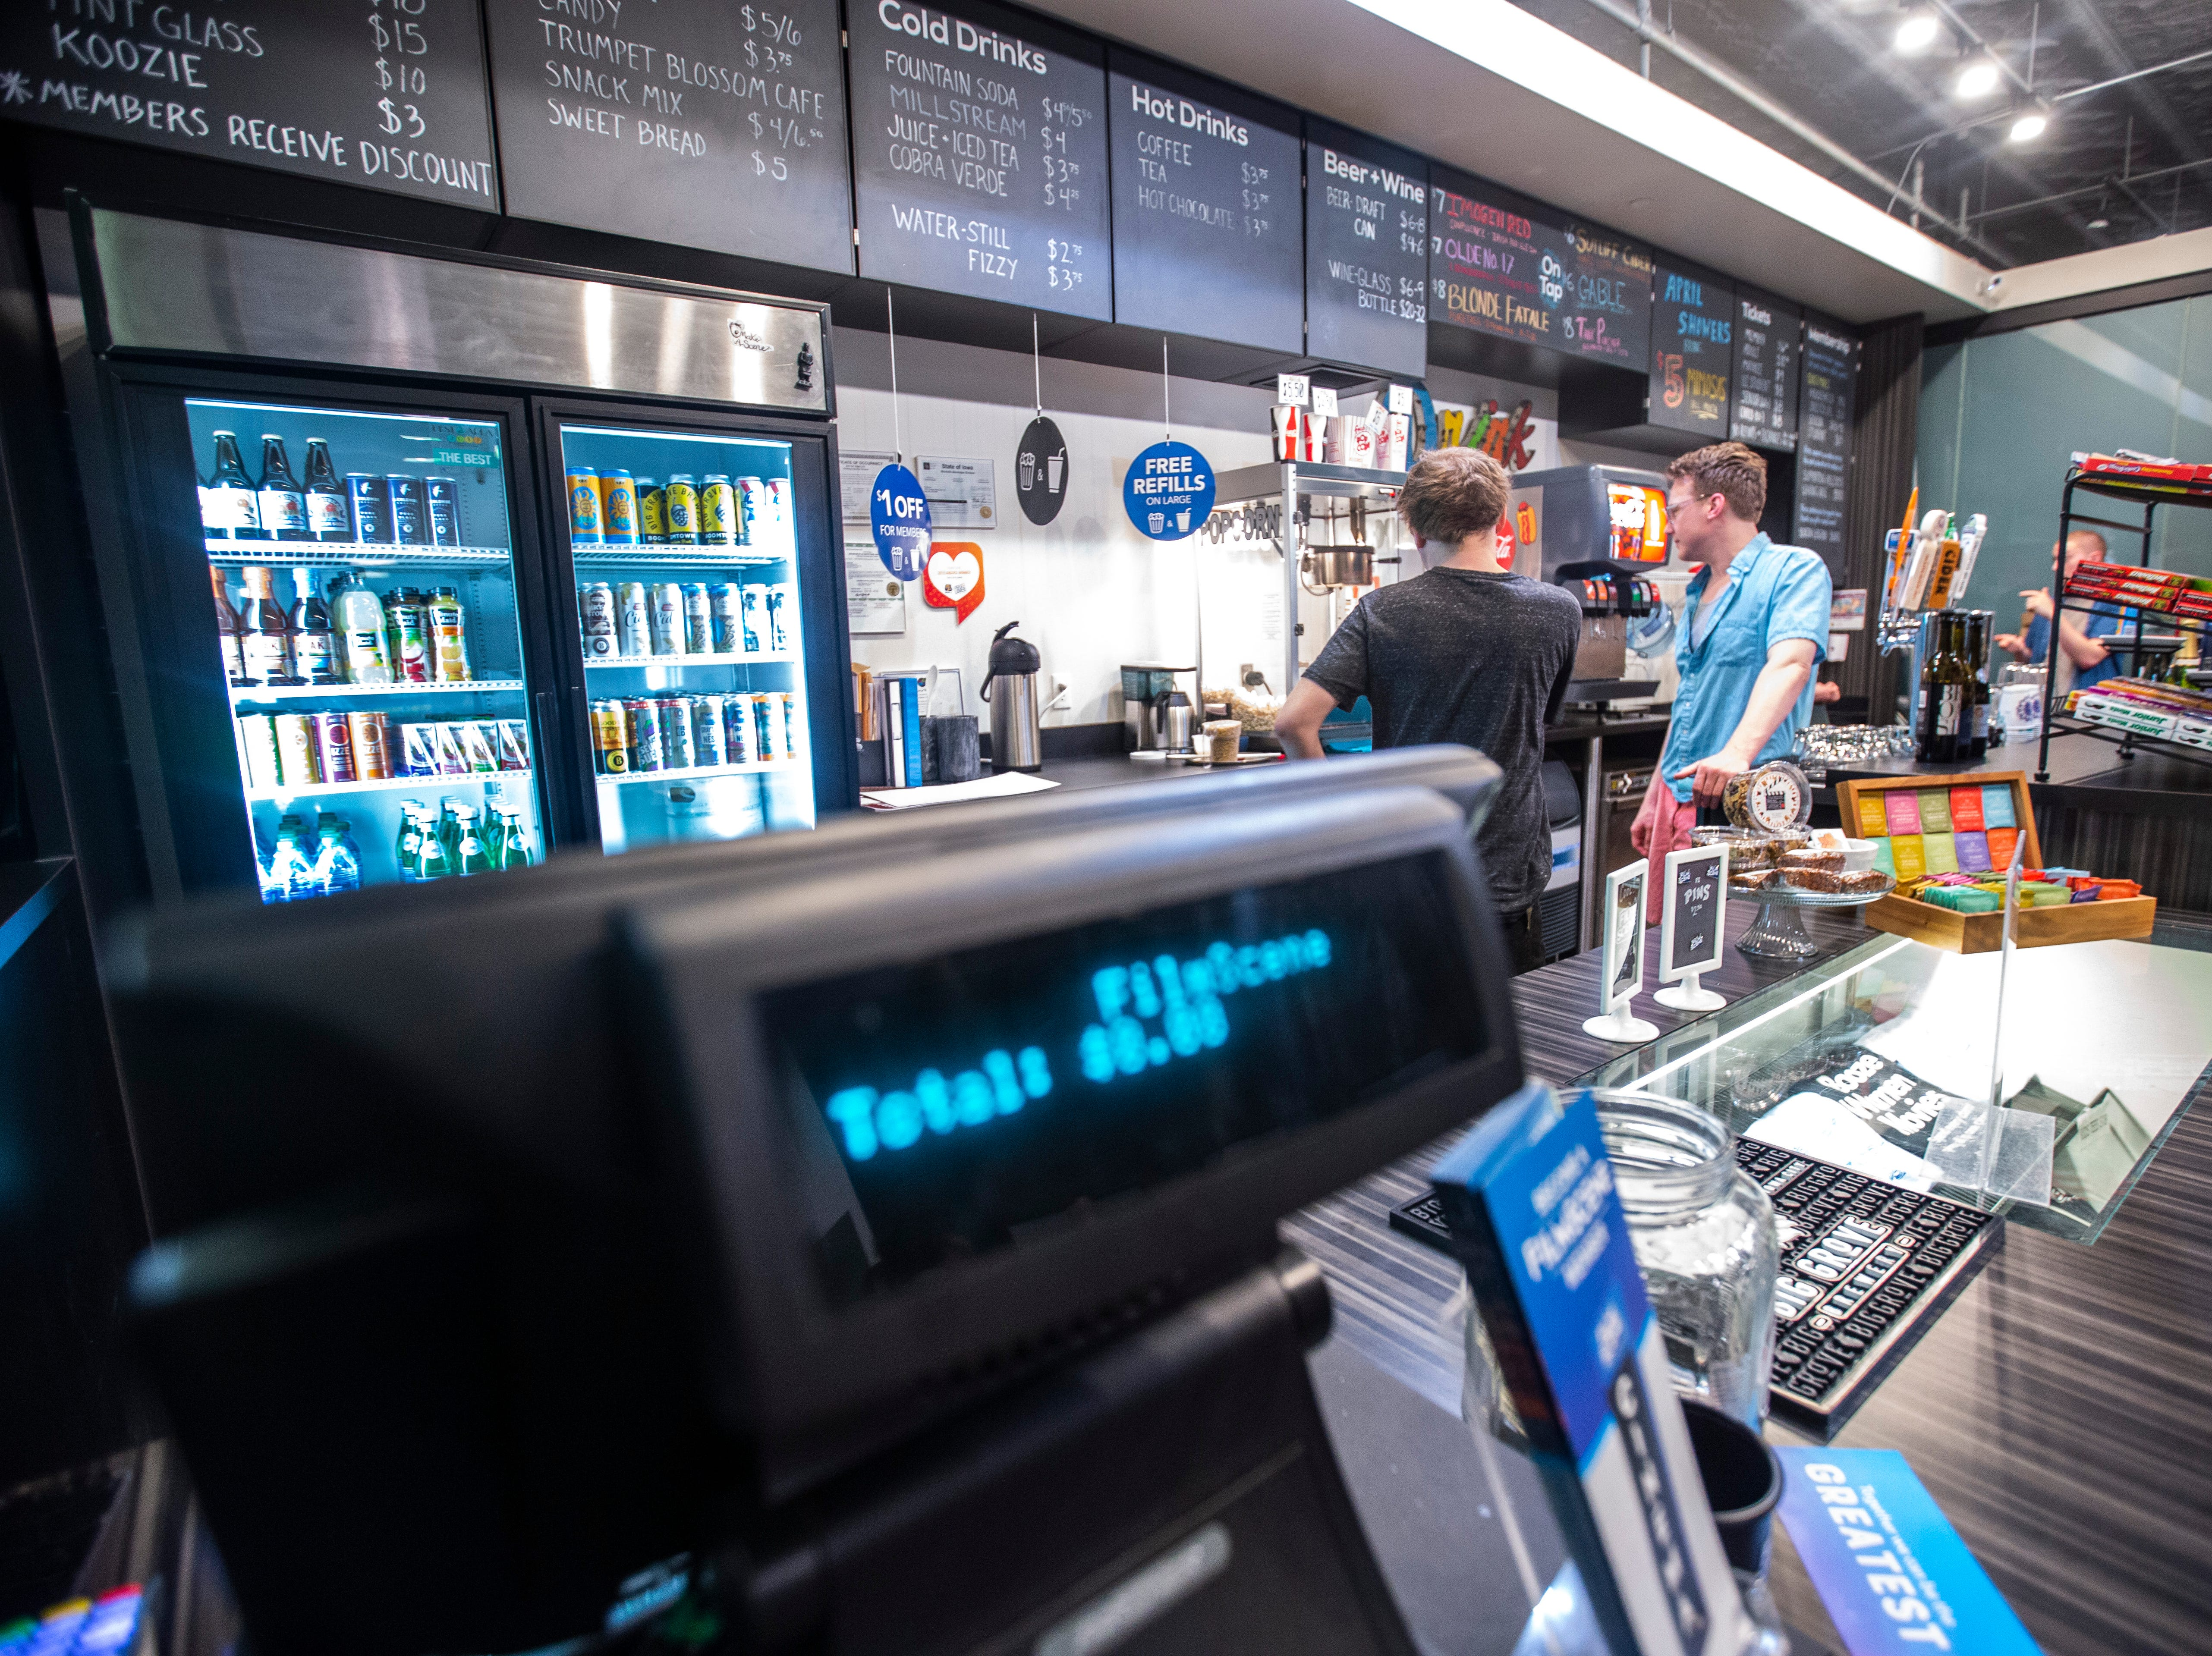 """""""FilmScene"""" scrolls across point of sale display while Aaron Holmgren, assistant operations manager, and Max Johnson, right, work during a """"Late Shift at the Grindhouse"""" movie screening, Wednesday, April 17, 2019, at FilmScene in Iowa City, Iowa."""